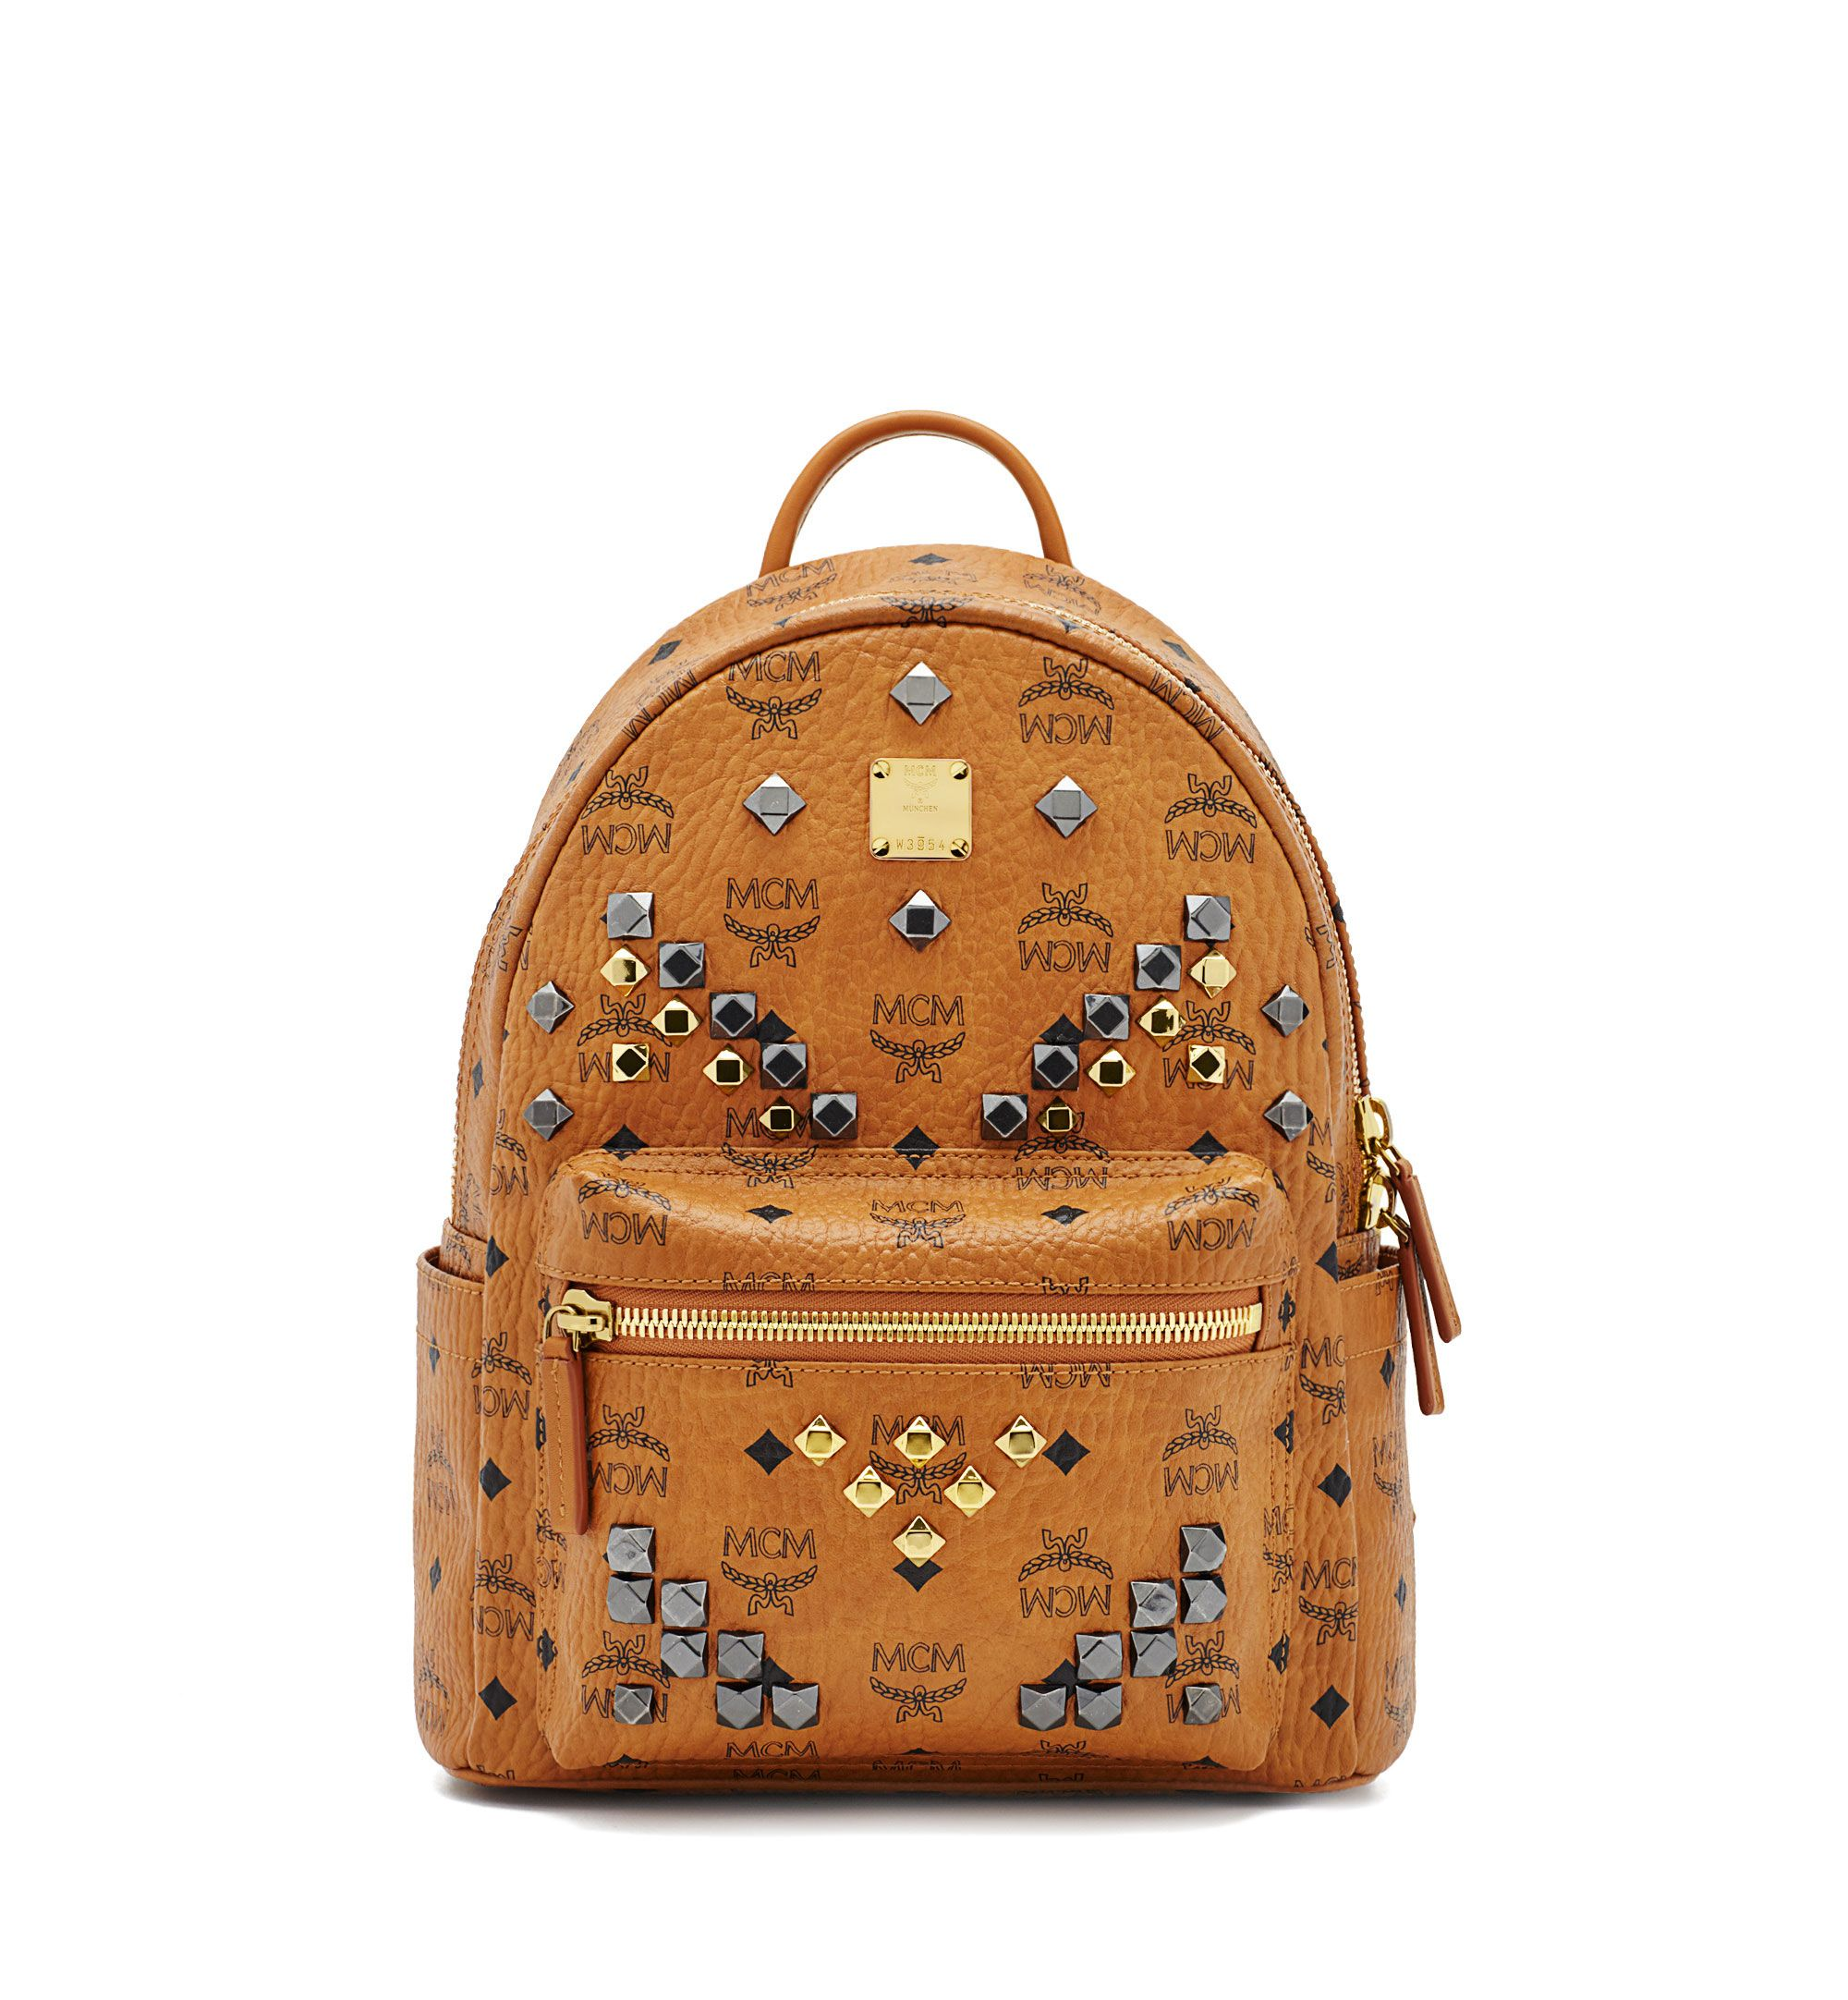 MCM STARK BACKPACK IN M STUDDED VISETOS. #mcm #bags #leather #lining